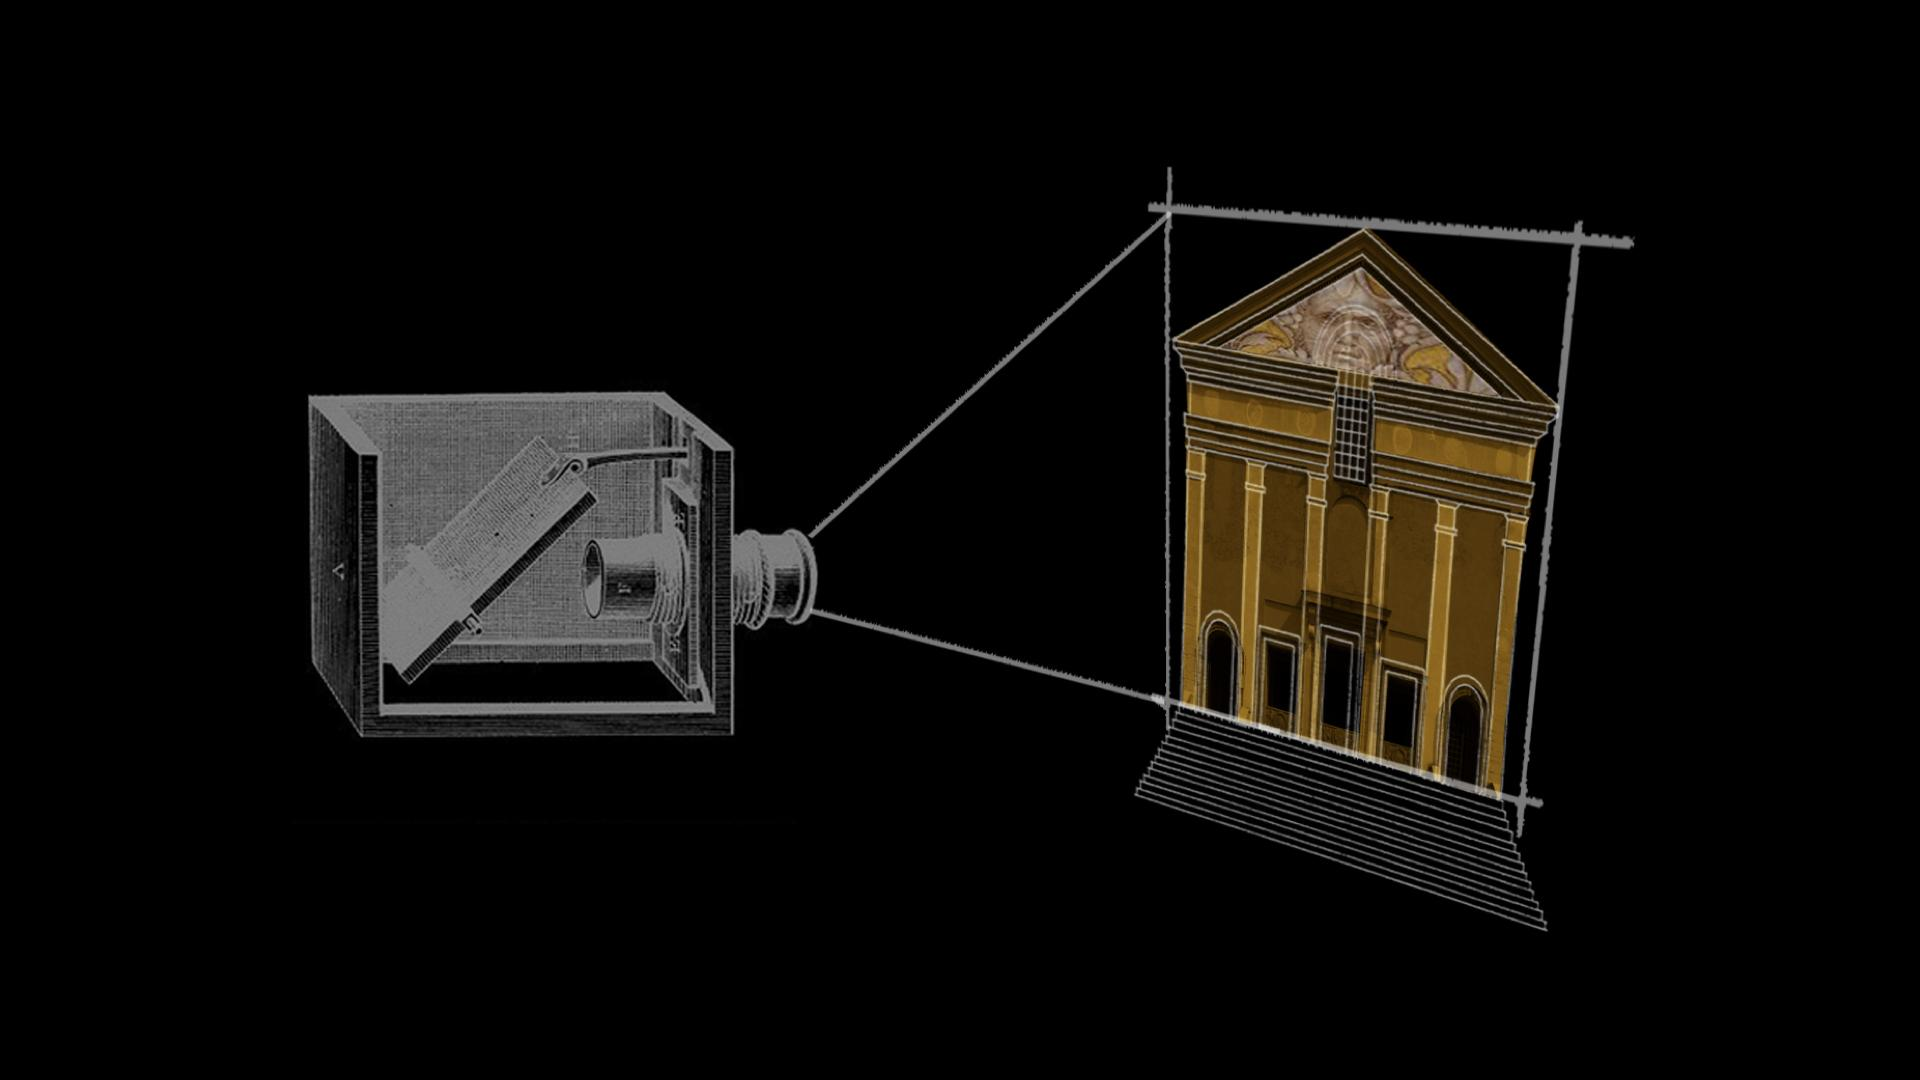 ILLUMINATE THE ARCHITECTURE - ARCHITECTURAL VIDEOPROJECTION AND VIDEOMAPPING